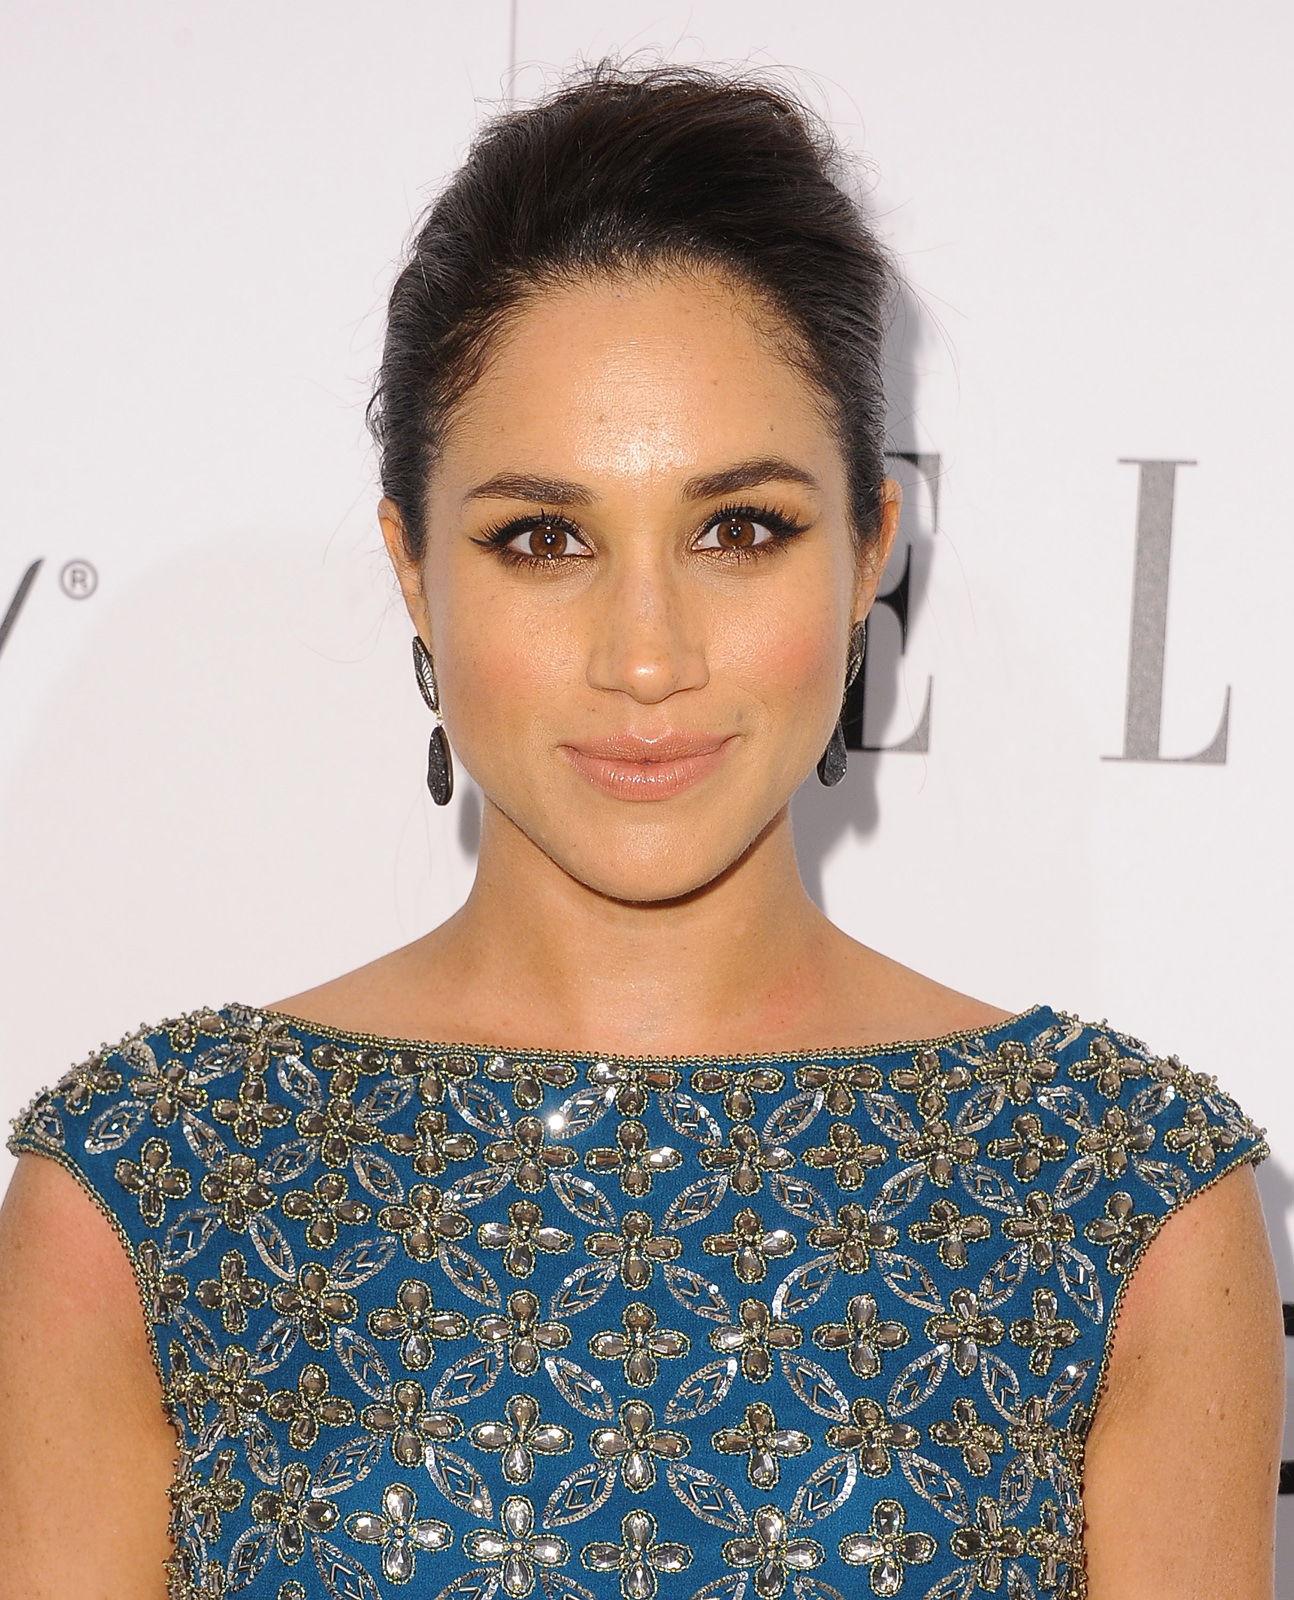 Meghan Markle Photo Gallery